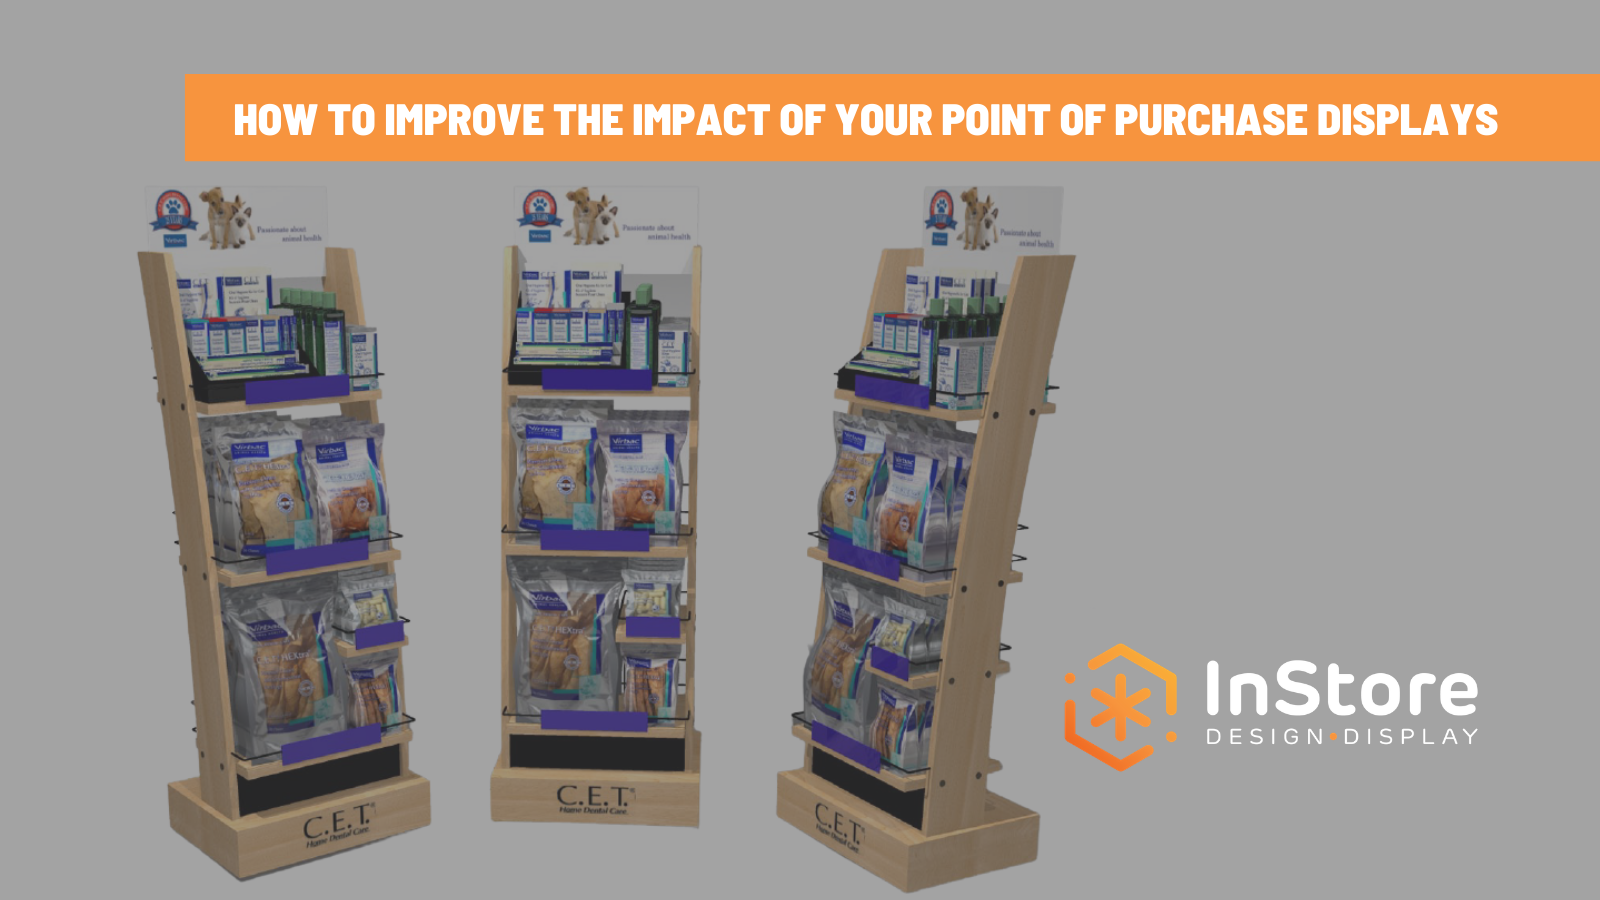 Improving Impact: 6 Tips to Guide Point-of-Purchase Display Design